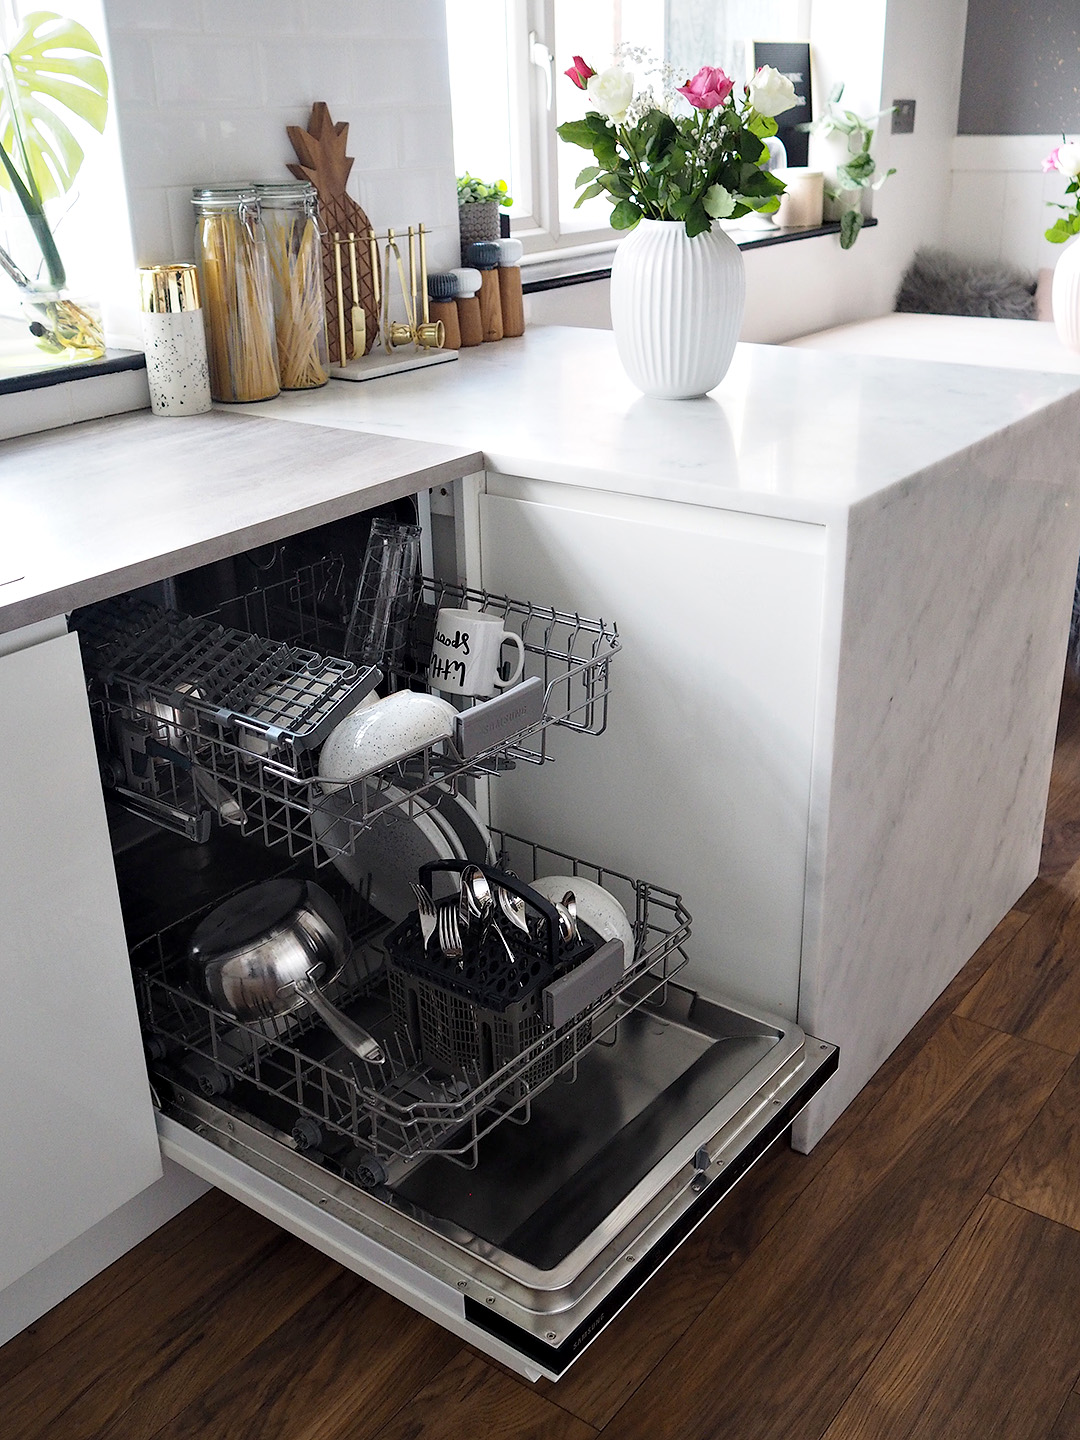 Samsung DW60M6040BB Fully Integrated Standard Dishwasher Review